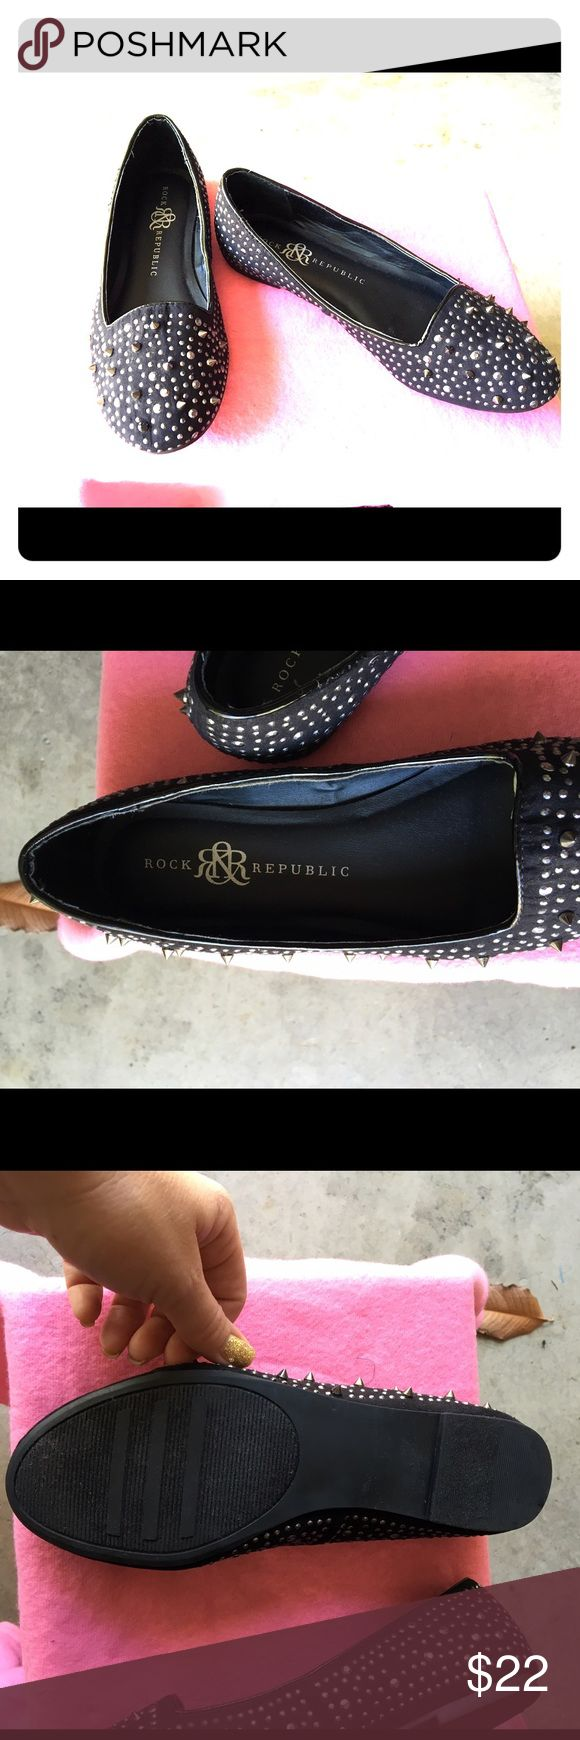 Rock & Republic Black Studded Flats I only wore these flats one time... there too small for me so looking for a good home for them. Super cute black & silver tone hardware Rock & Republic Shoes Flats & Loafers